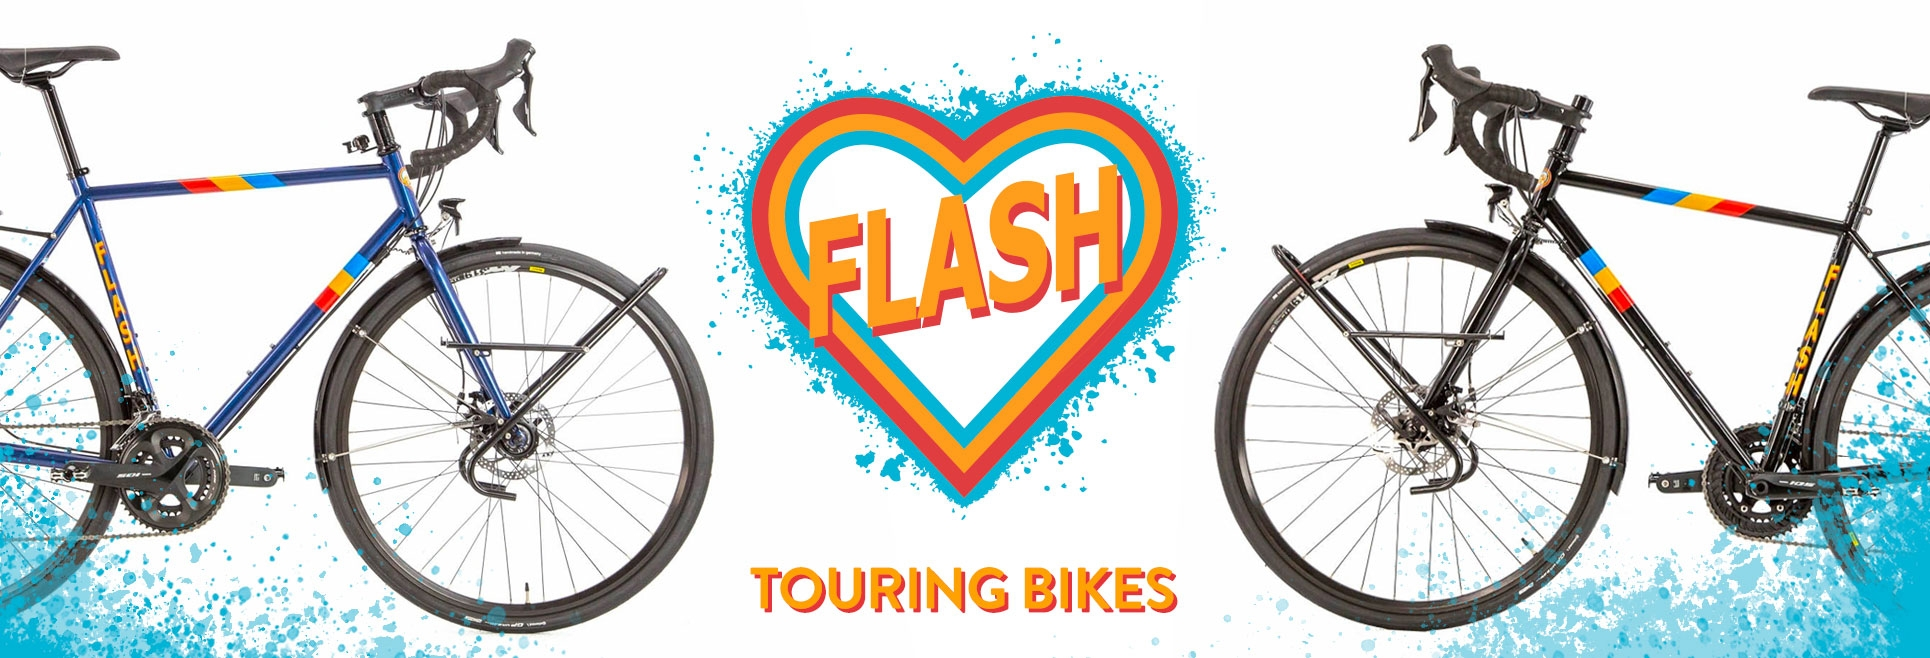 Flash Touring Bikes